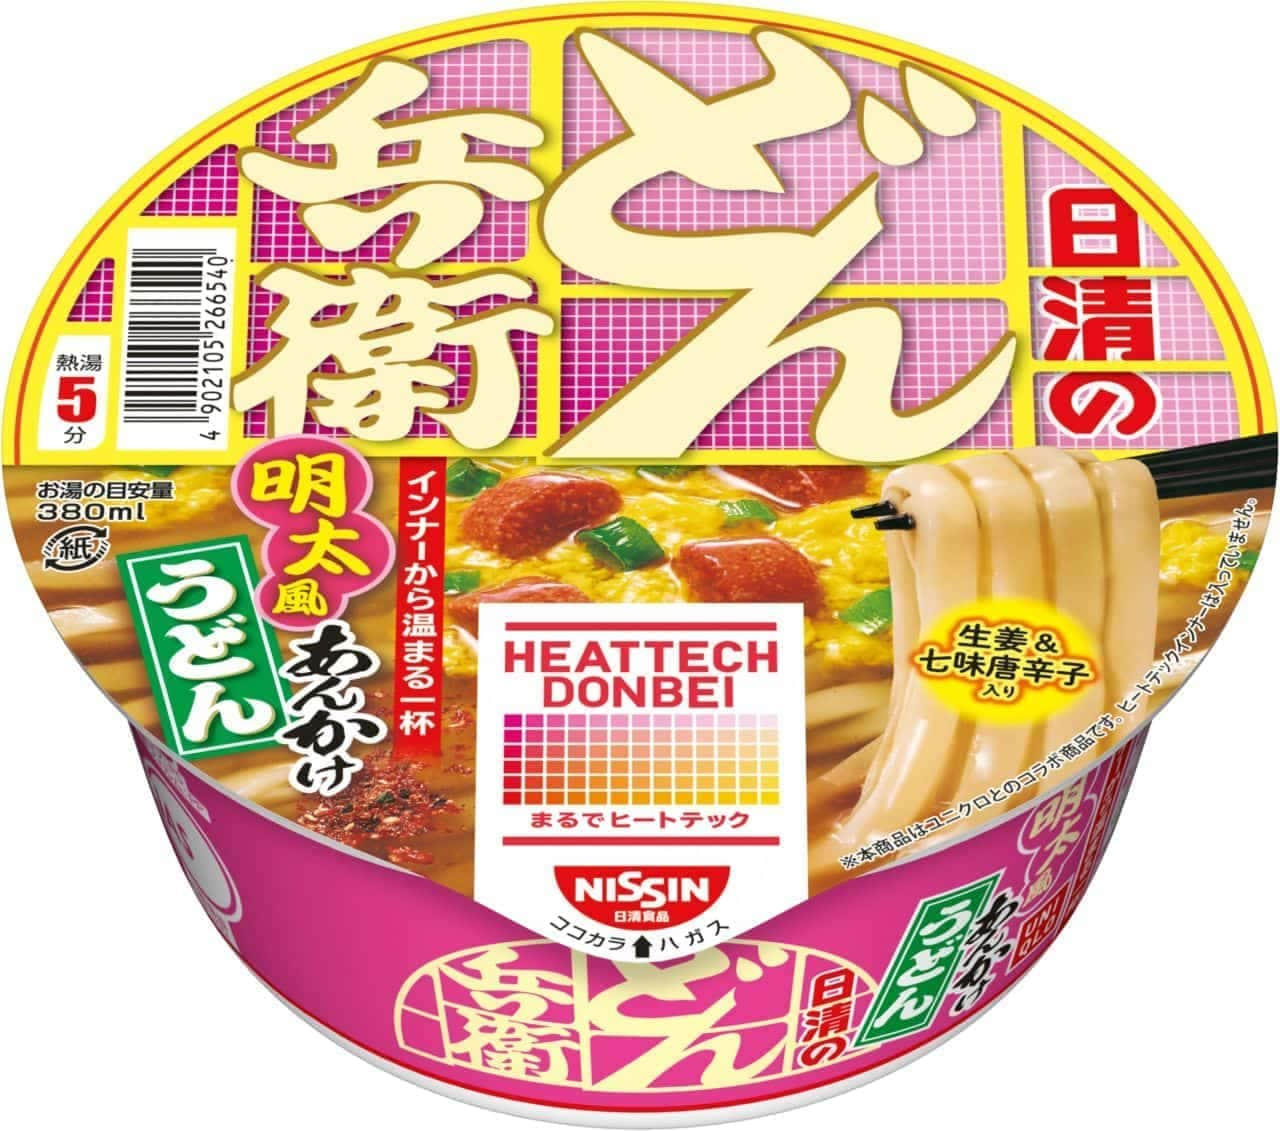 "HEATTECH DONBEI ""Mentaigo Ankake Udon"" by Uniqlo and Nissin"